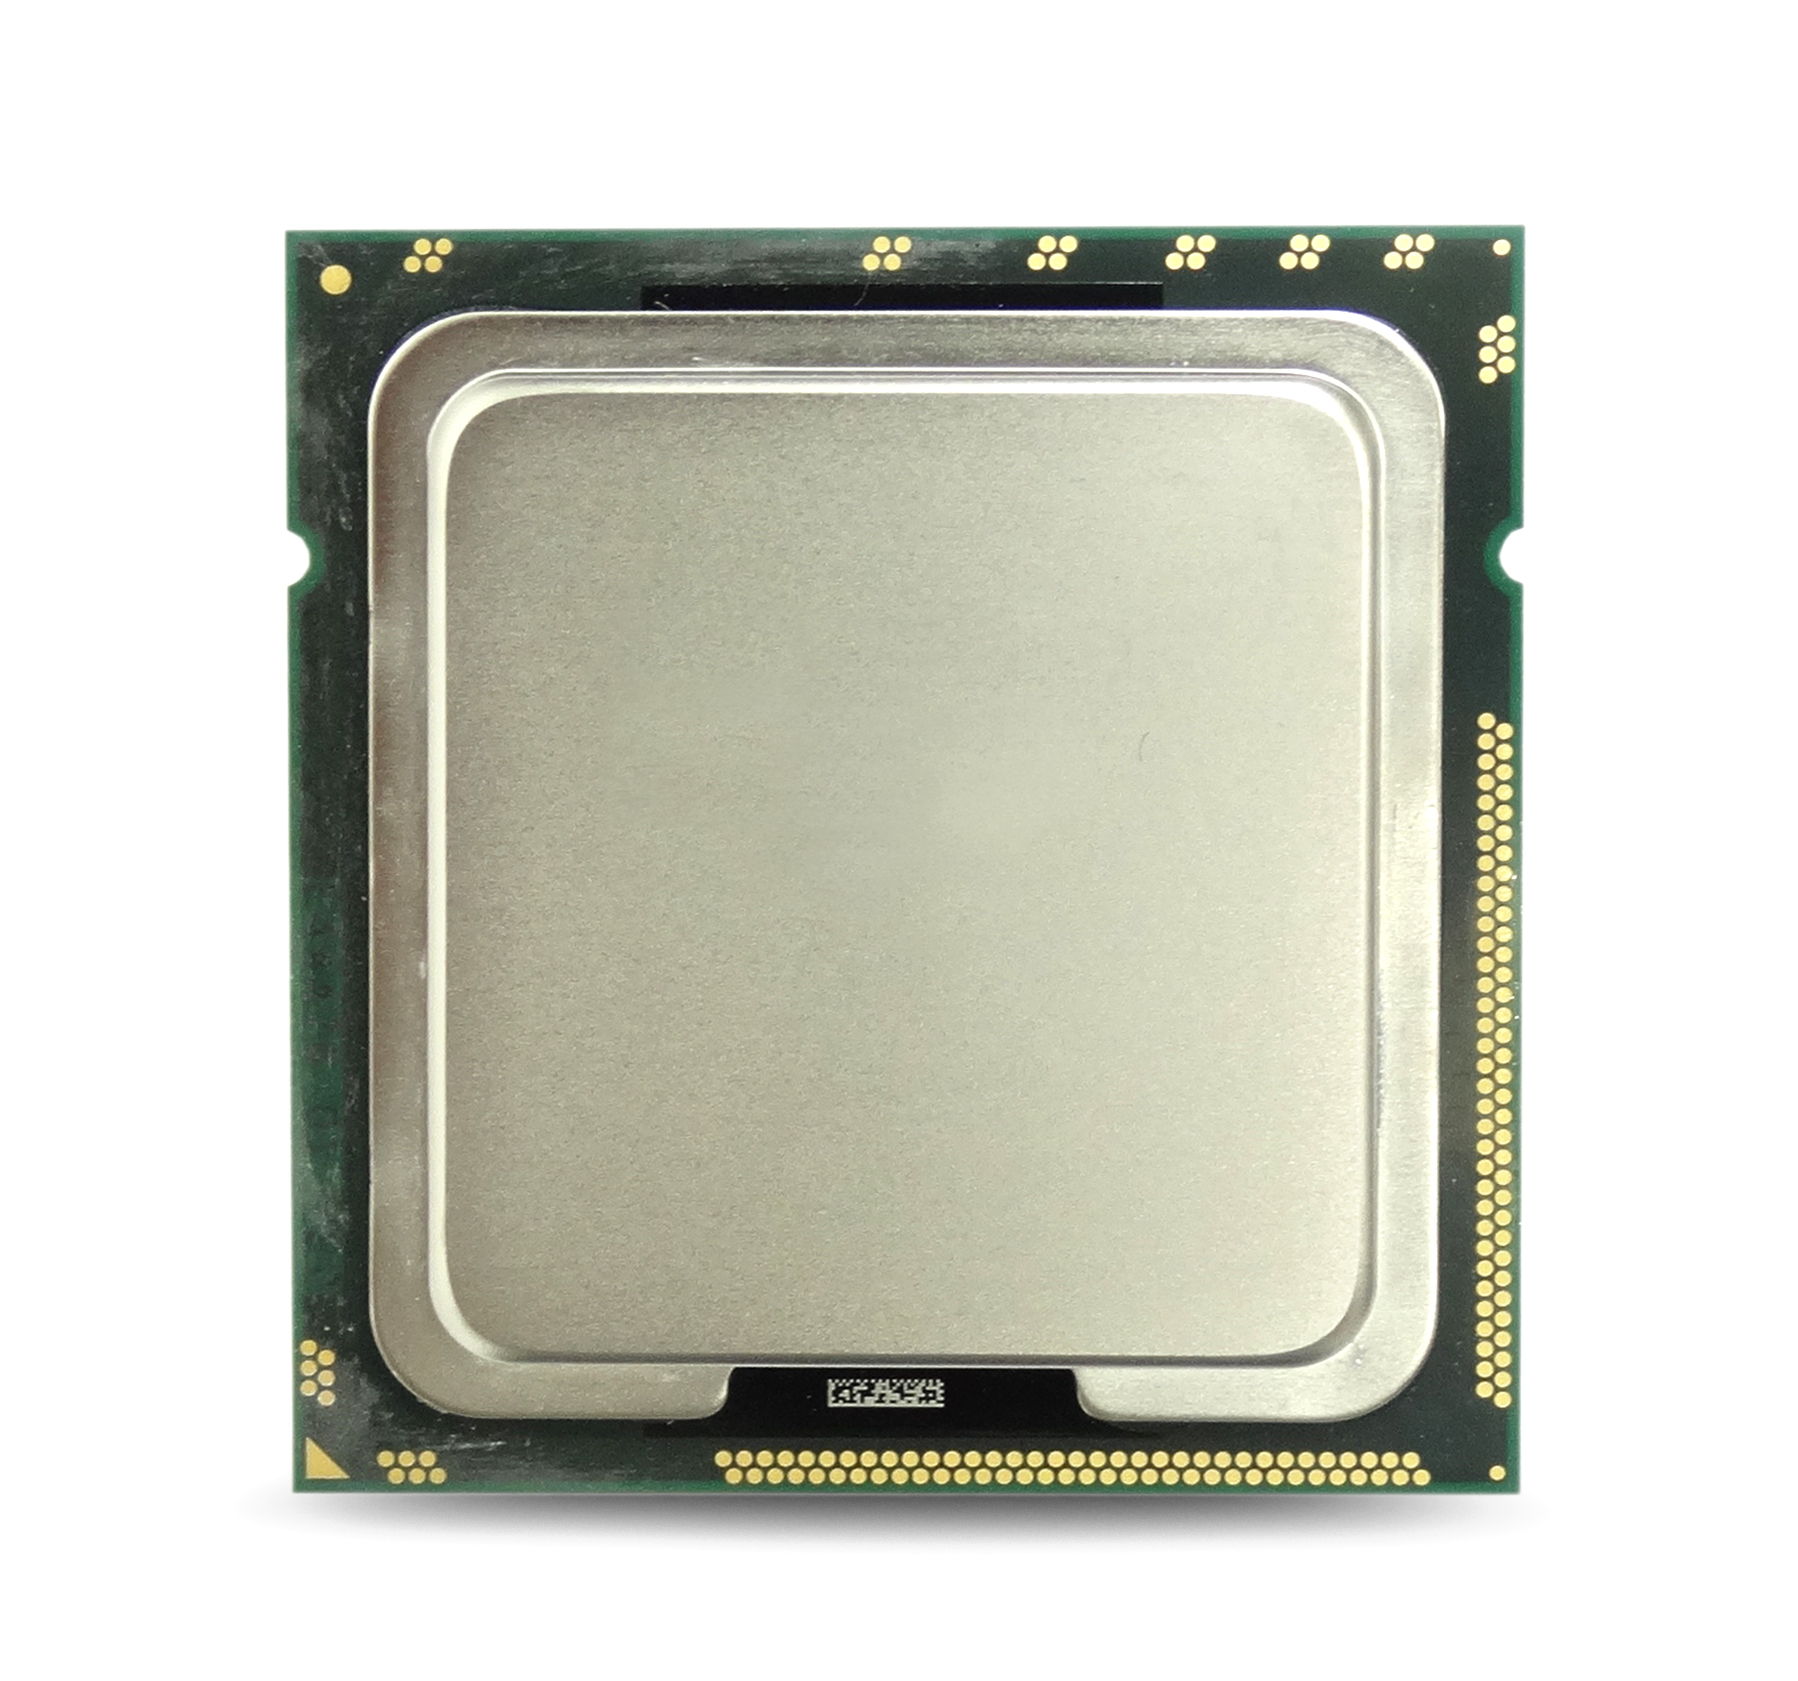 Intel E6300 1.86GHz 1066MHz 2MB Core 2 Duo Processor (SL9TA)